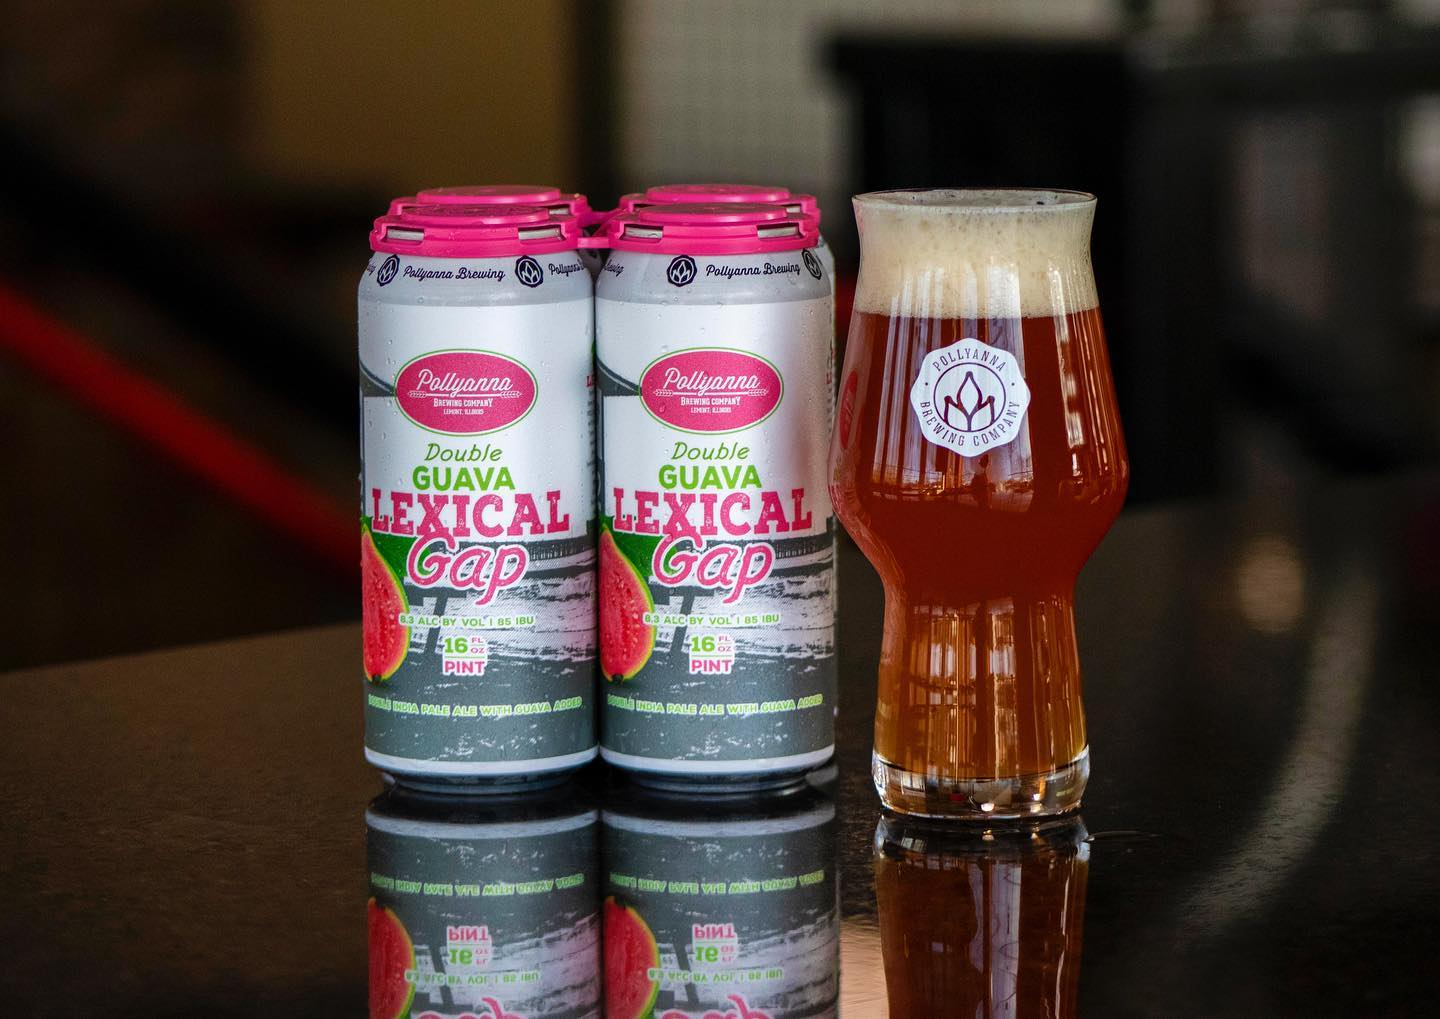 Two cans and a glass of Double Guava Lexical Gap from Pollyanna Brewing Company